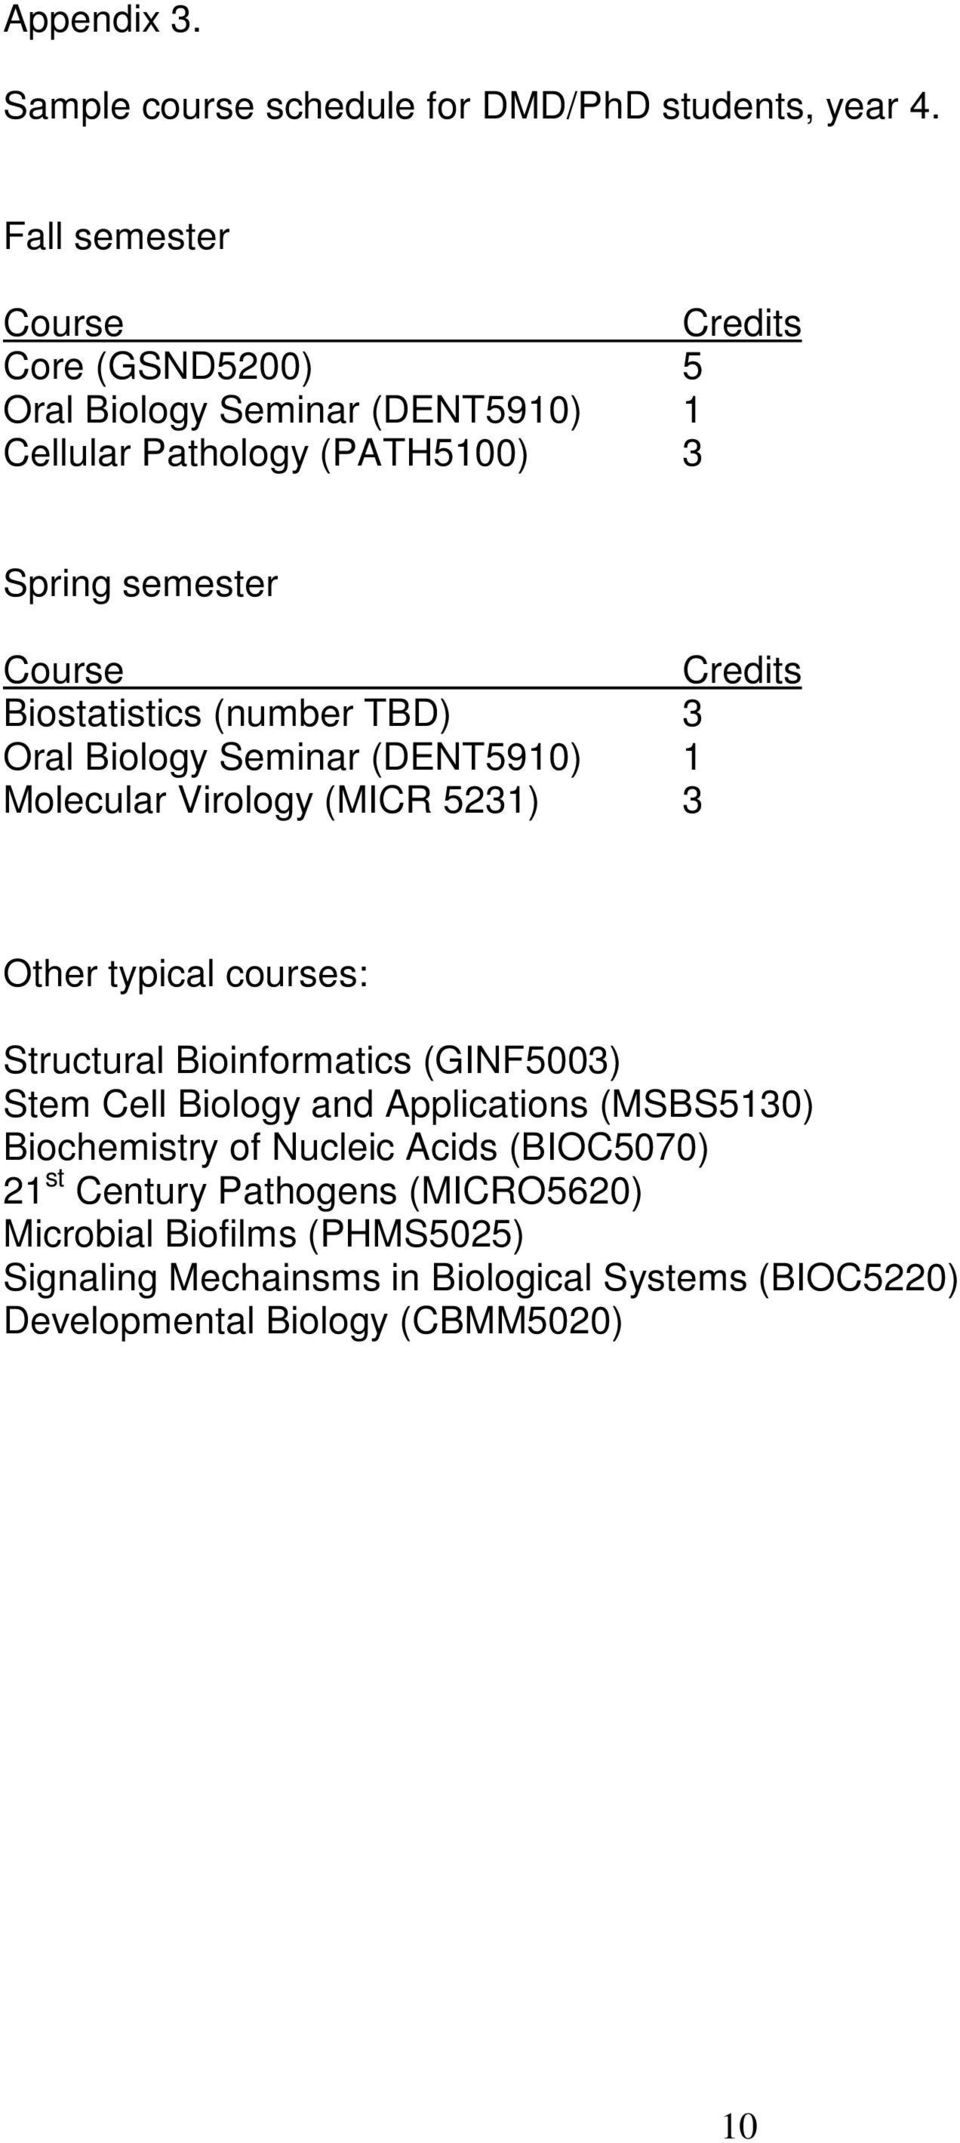 Biostatistics (number TBD) 3 Oral Biology Seminar (DENT5910) 1 Molecular Virology (MICR 5231) 3 Other typical courses: Structural Bioinformatics